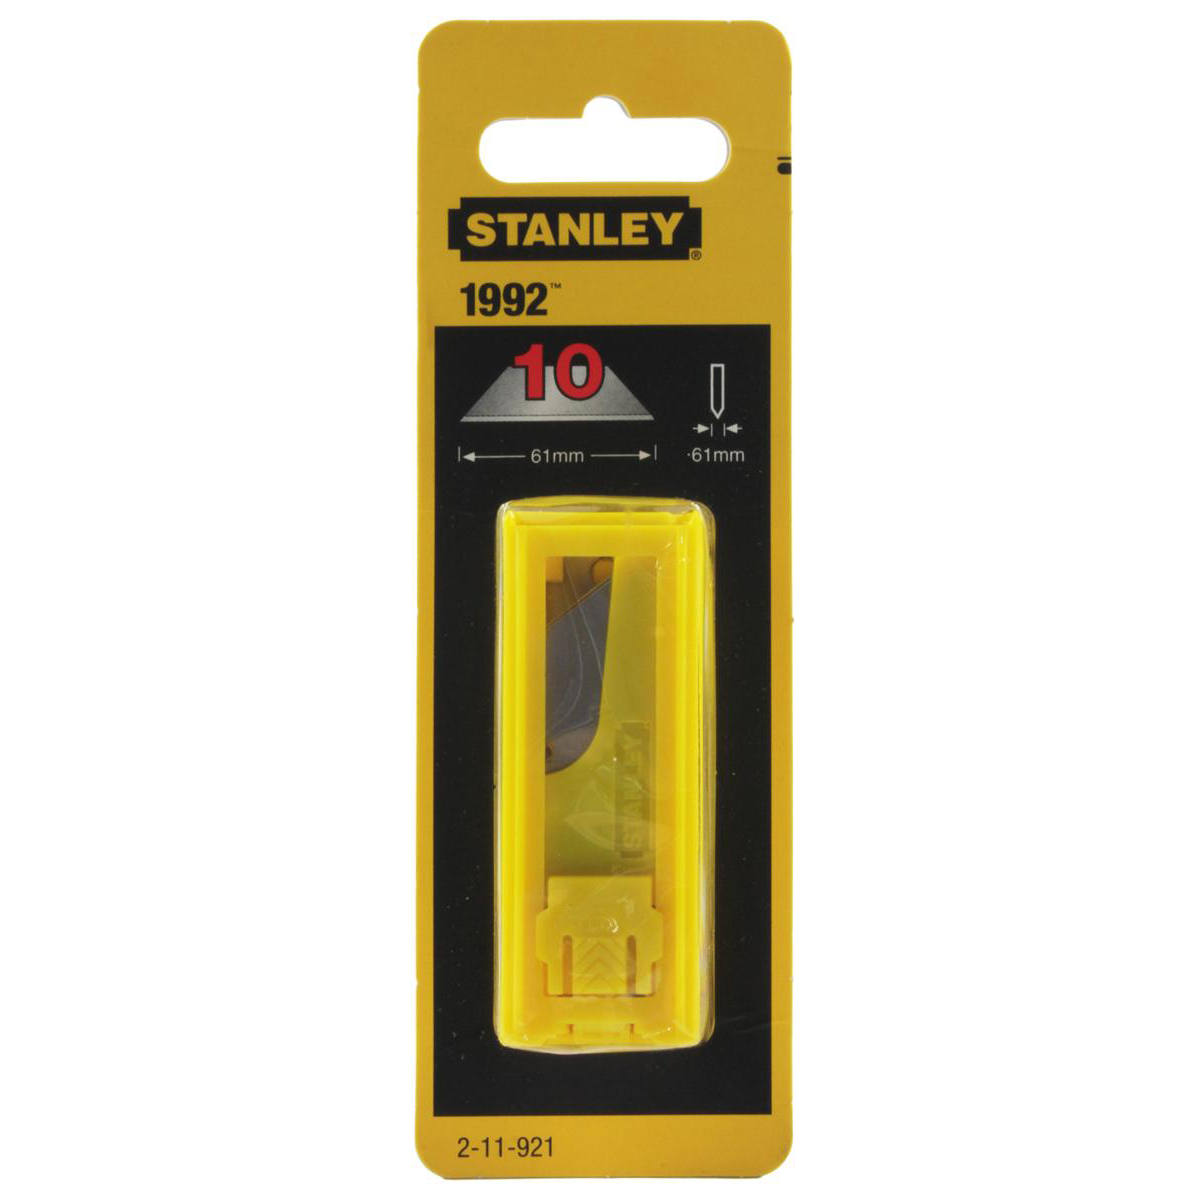 Stanley Replacement Spare Blades Heavy-duty 1992 Ref 2-11-921 Pack 10